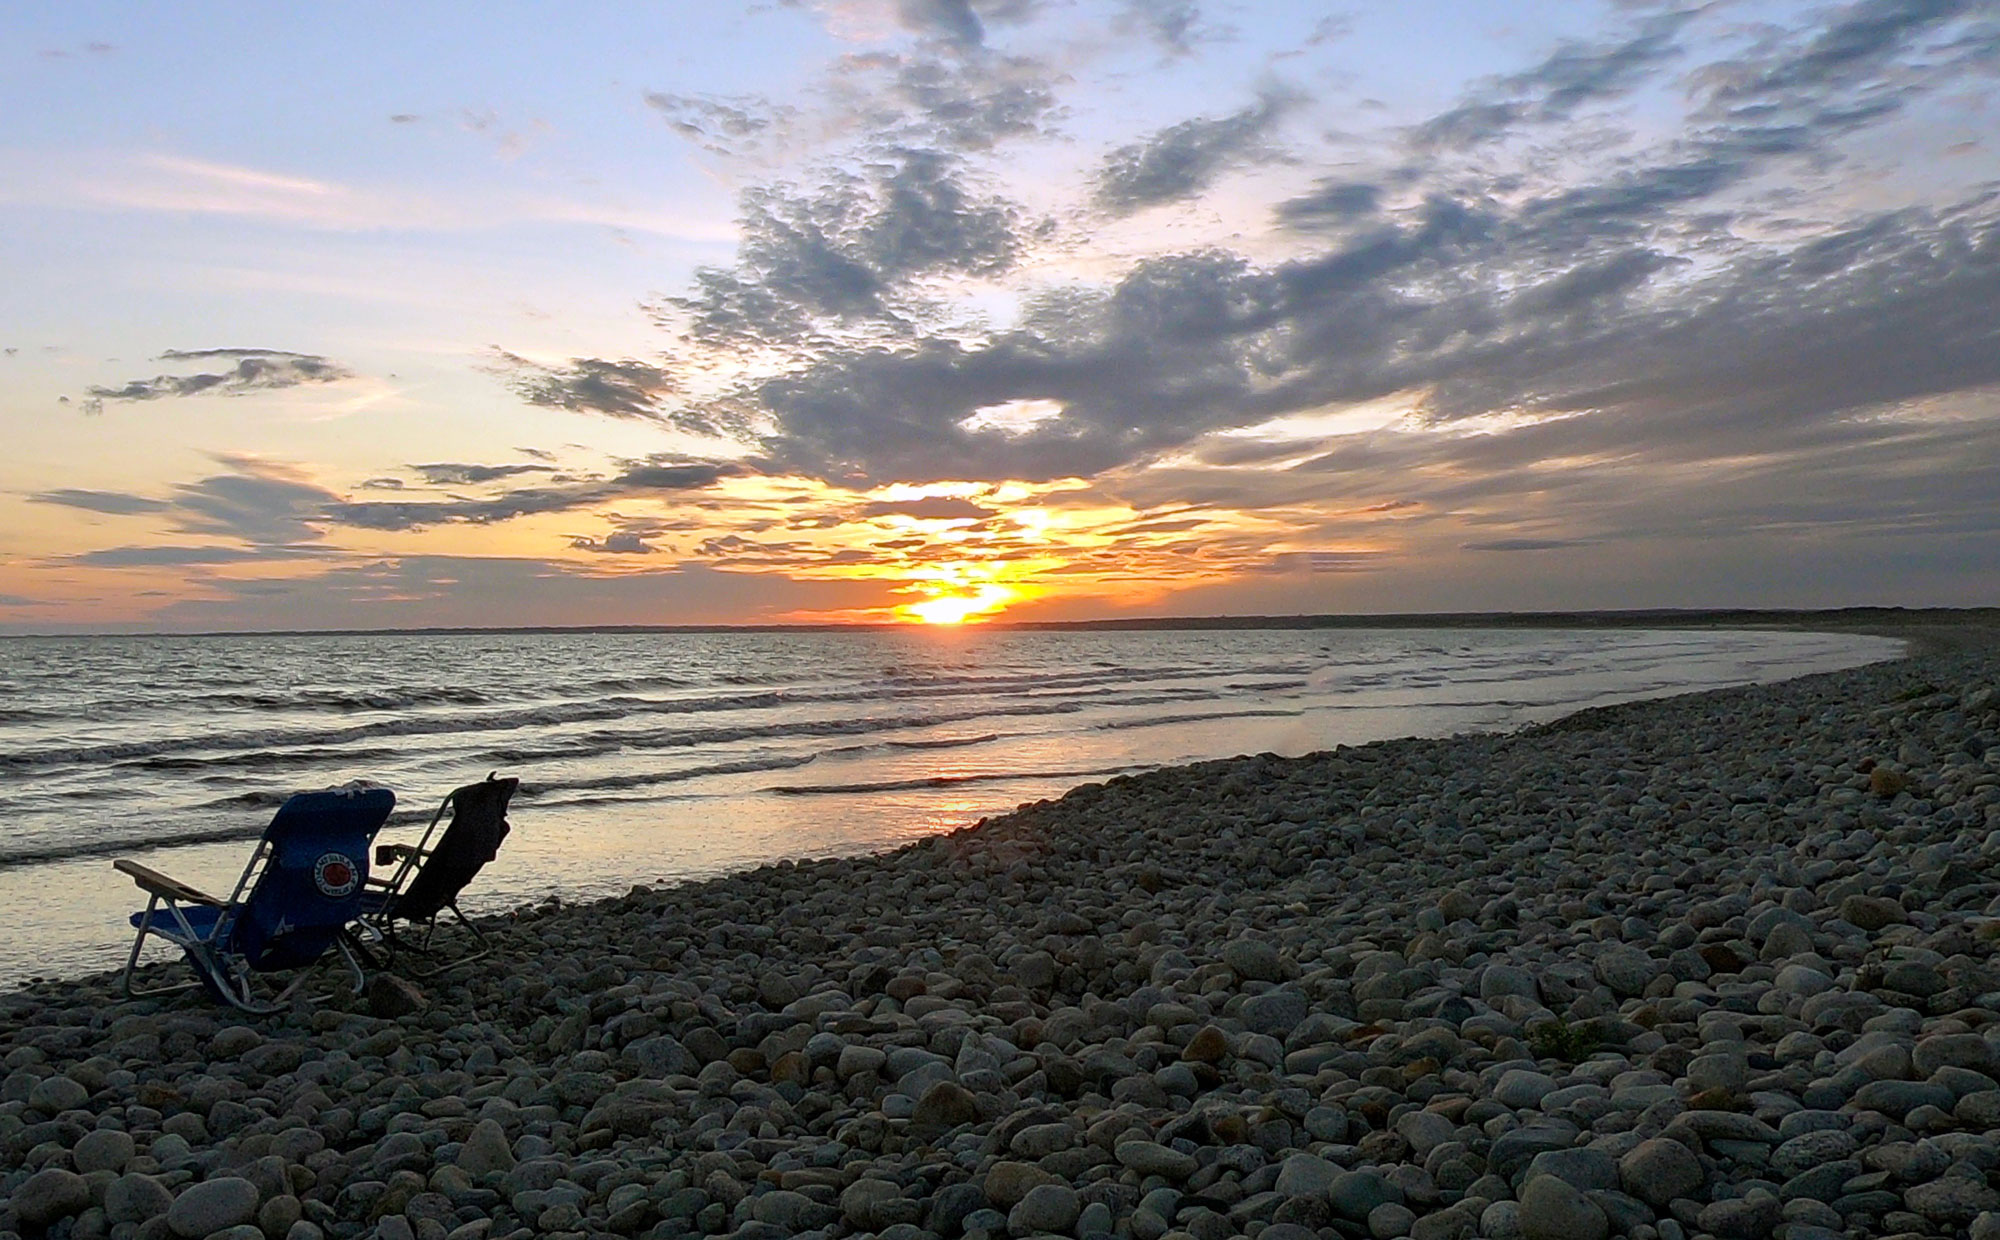 sunset with two beach chairs on the rocky beach while camping at Horseneck Beach State Reservation, Massachusetts